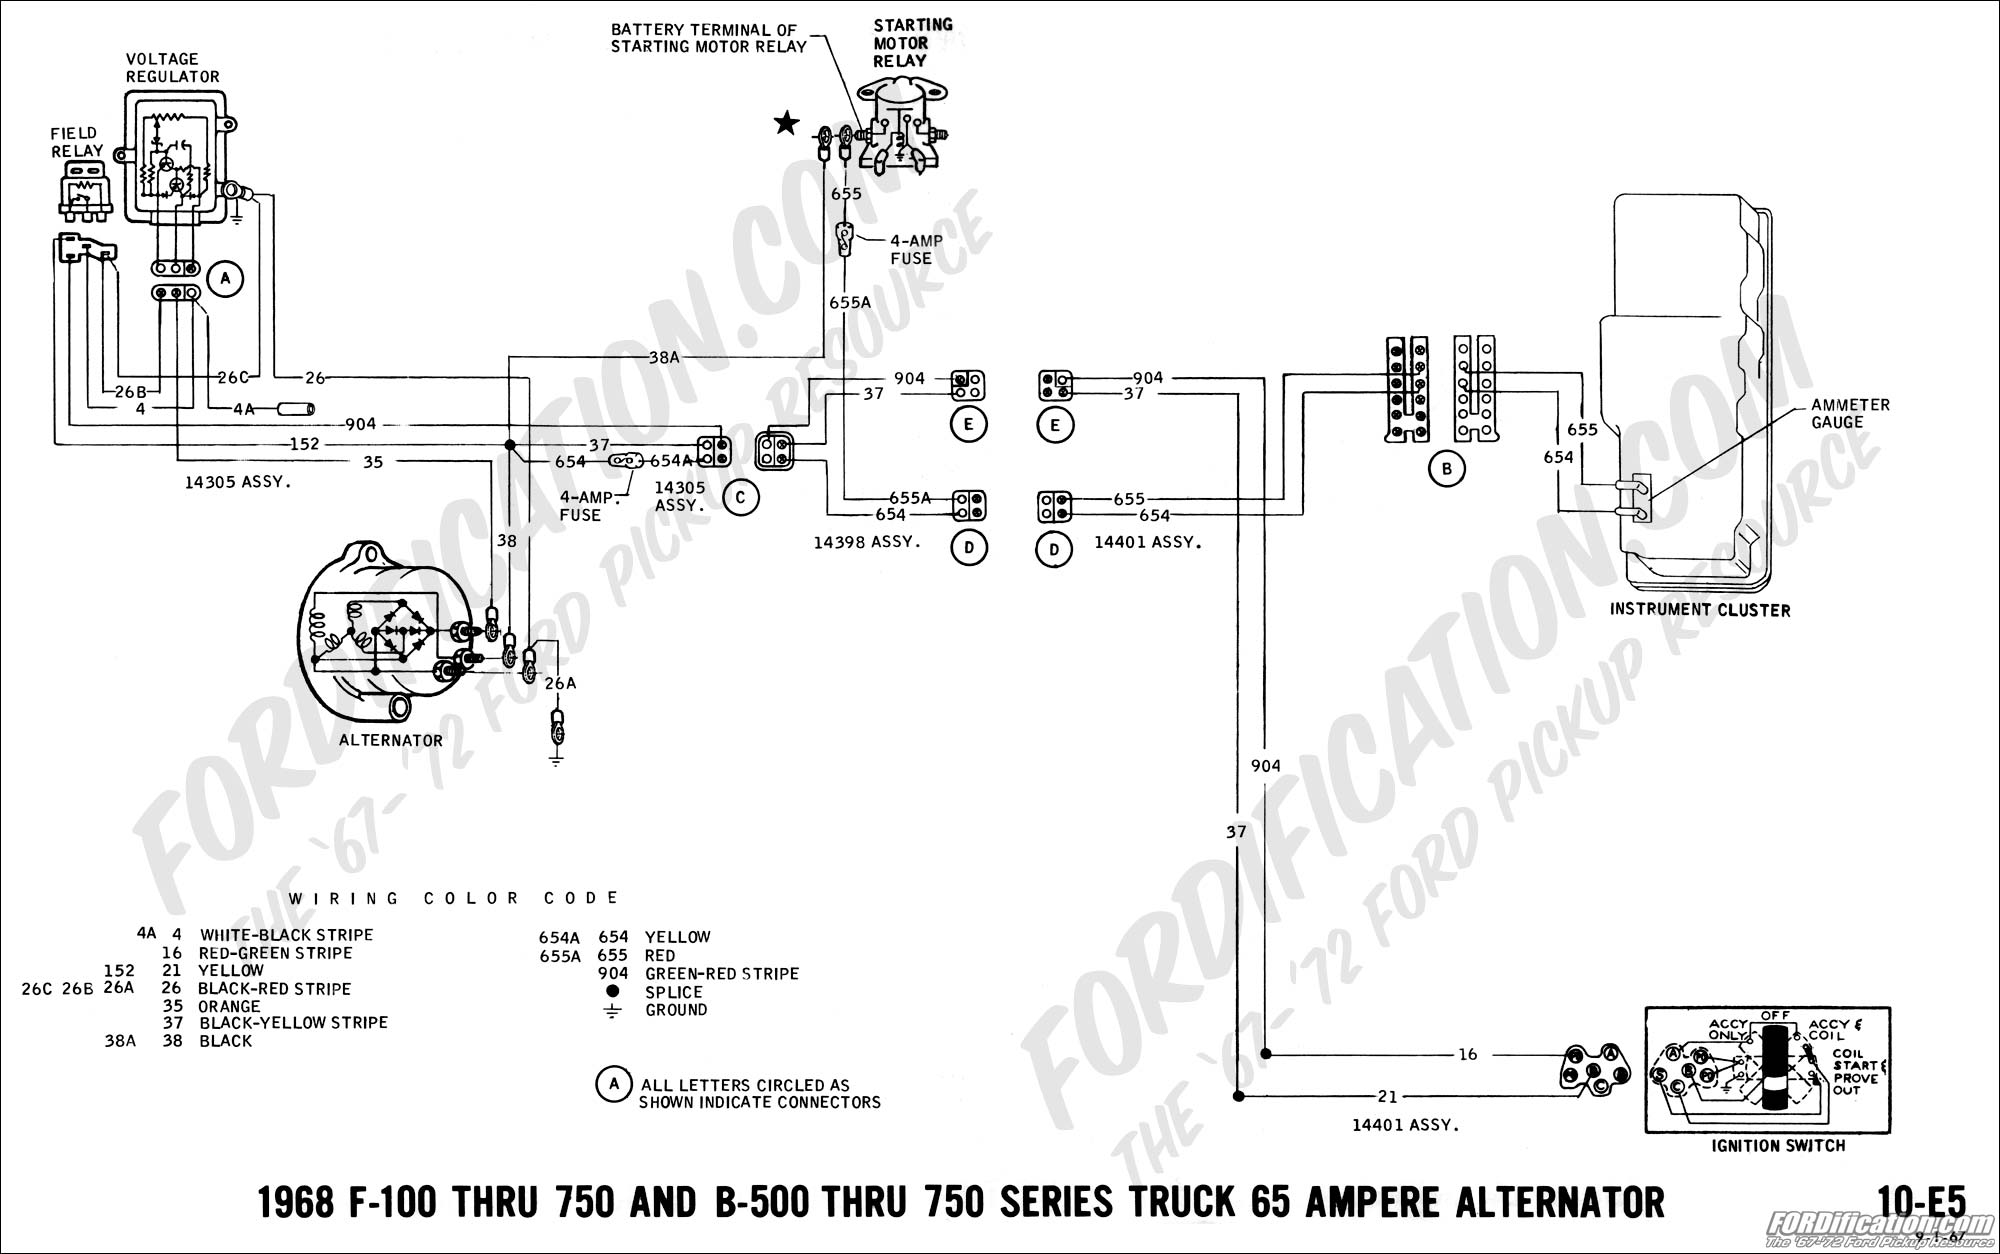 68 07 ford truck technical drawings and schematics section h wiring chrysler alternator wiring diagram at mifinder.co